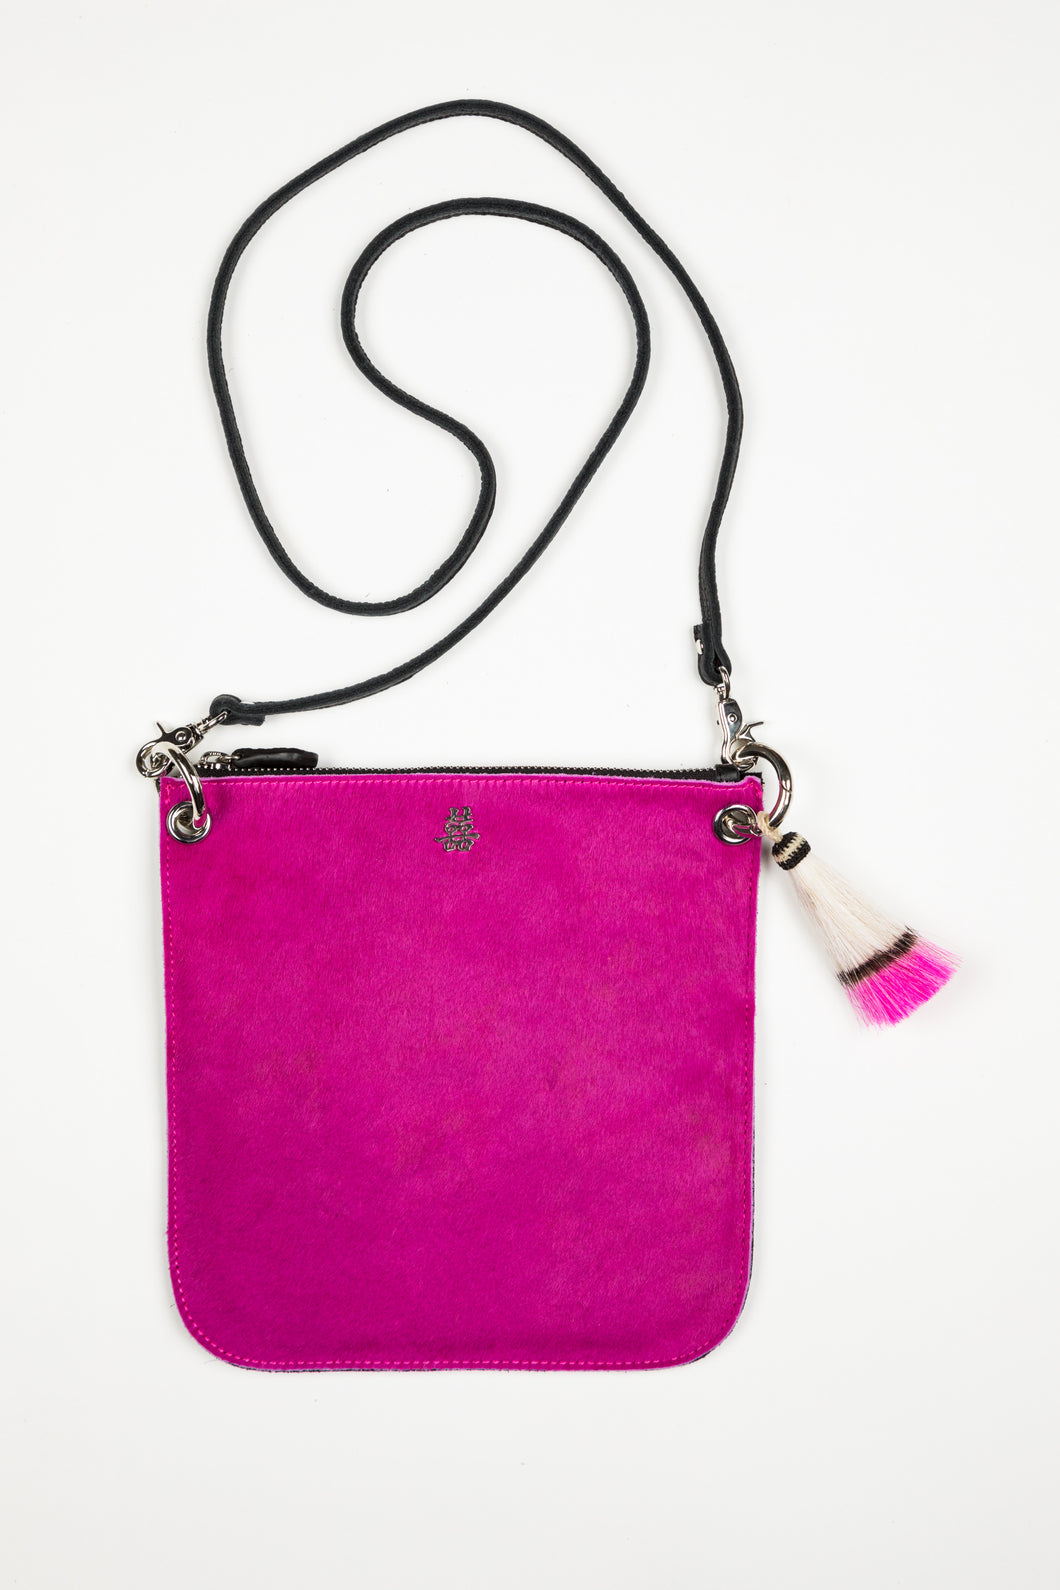 Happy Handbag / Fuchsia Pony